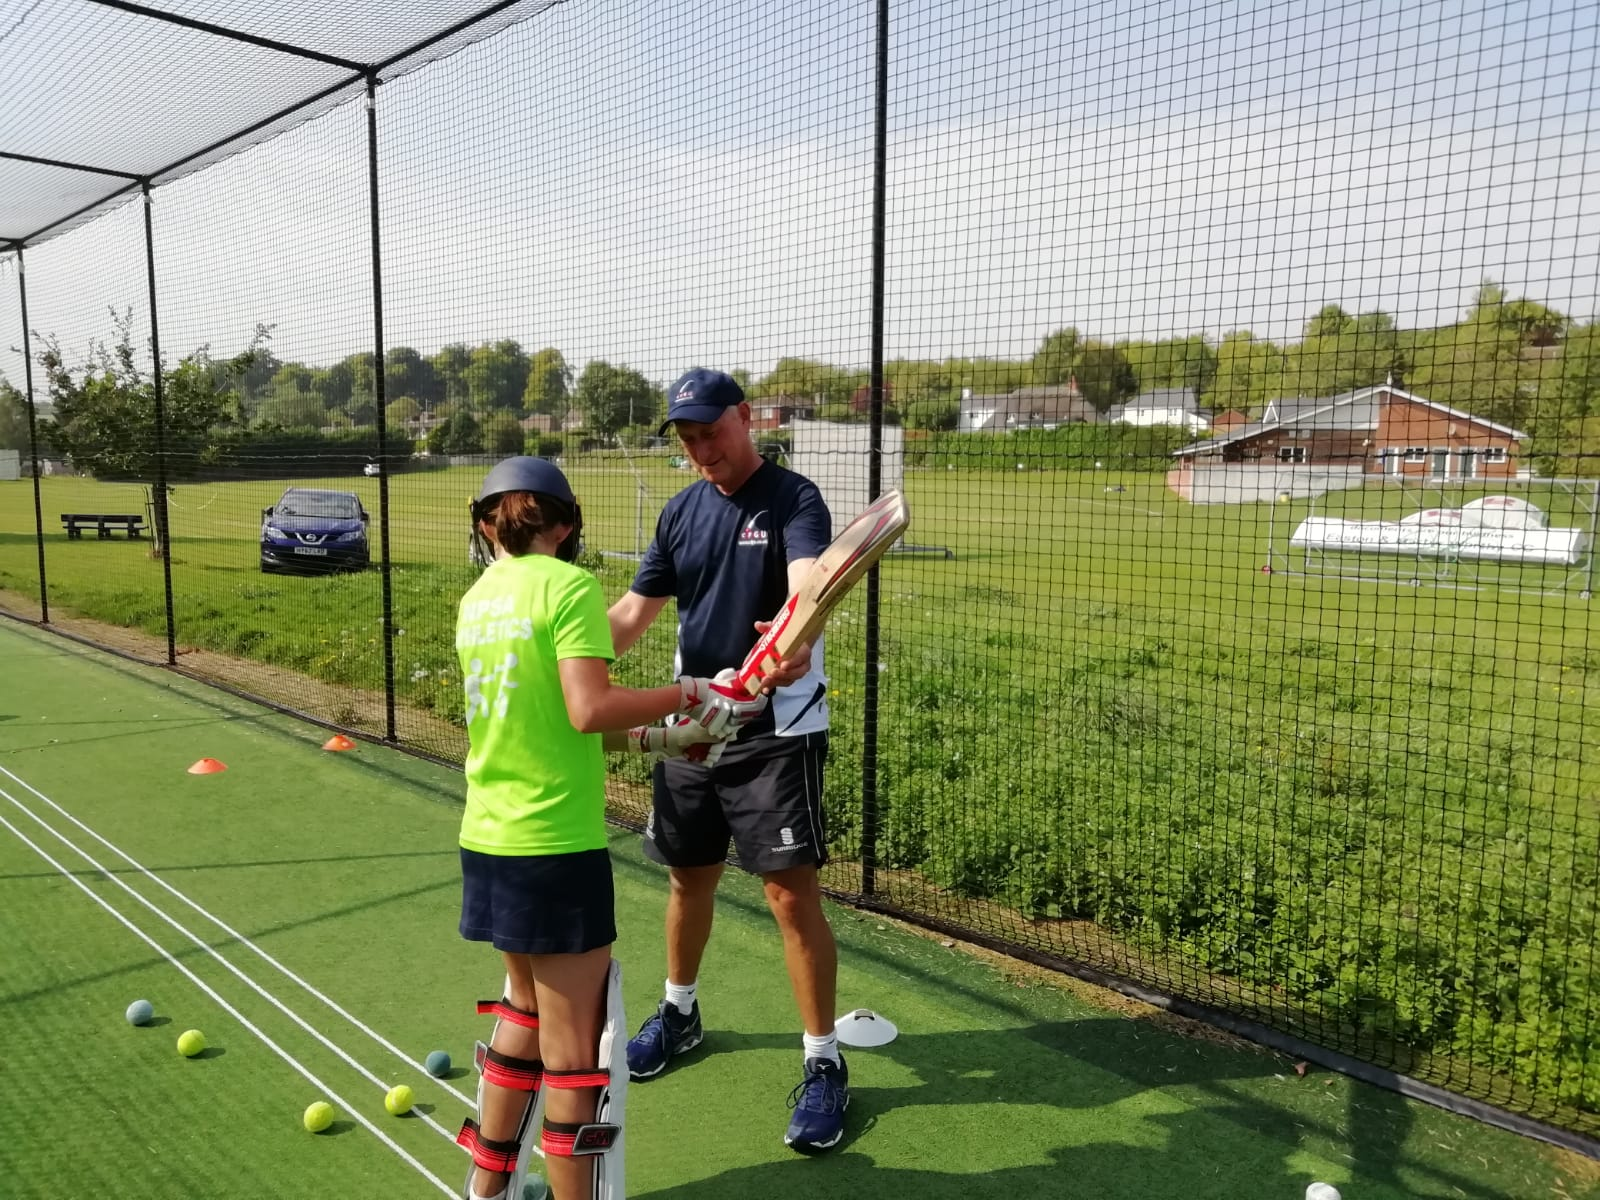 coaching - CFGU delivers a bespoke coaching experience to clubs, individuals and schools, universities and county players.